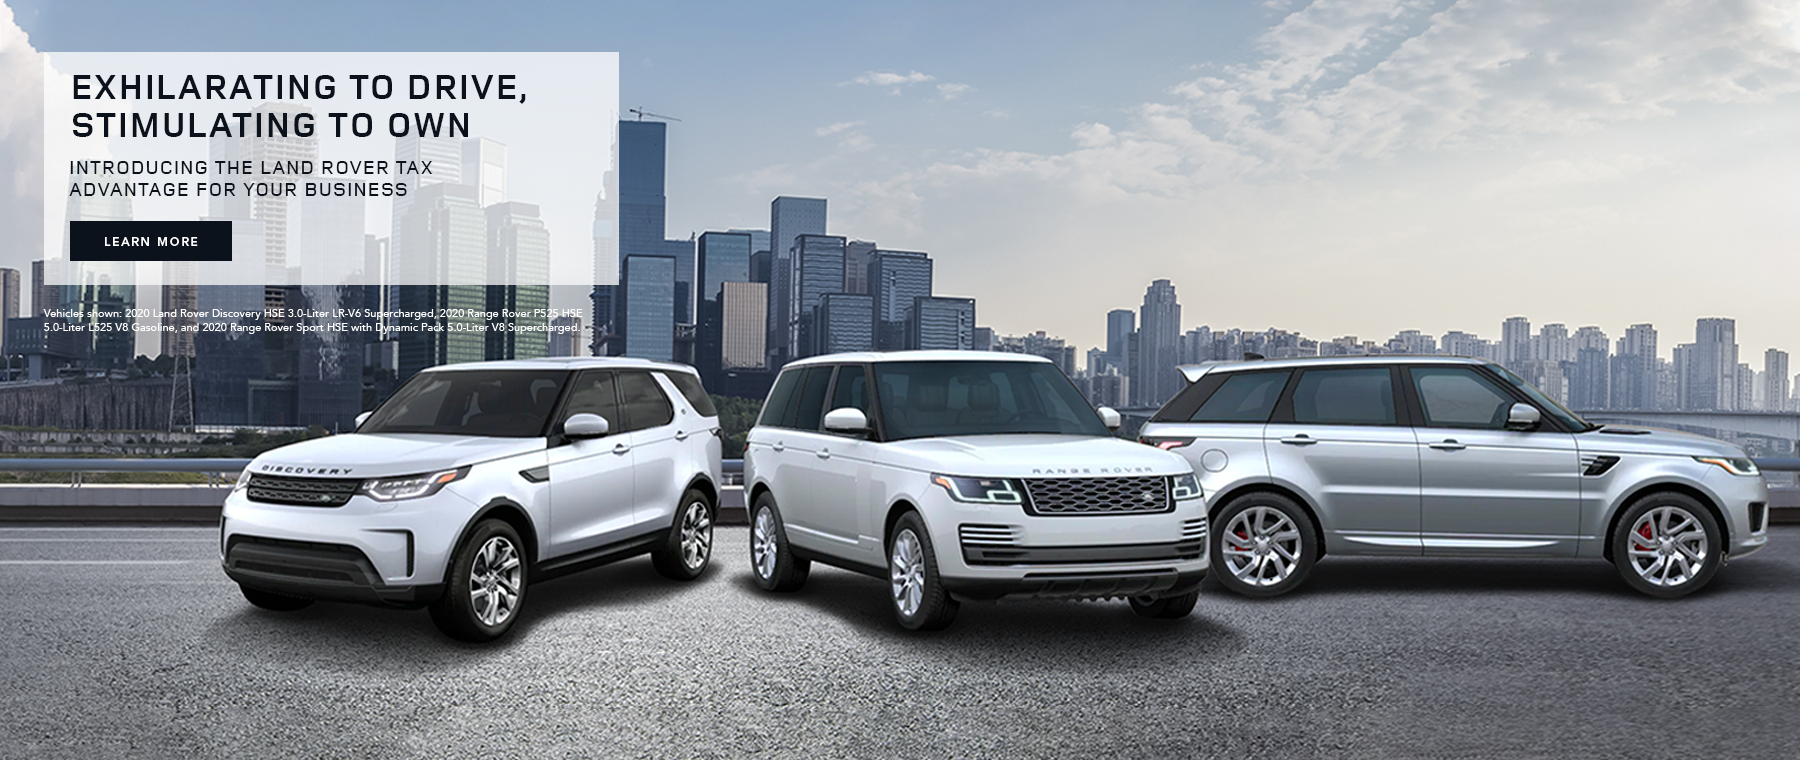 2020 Land Rover Tax Advantage